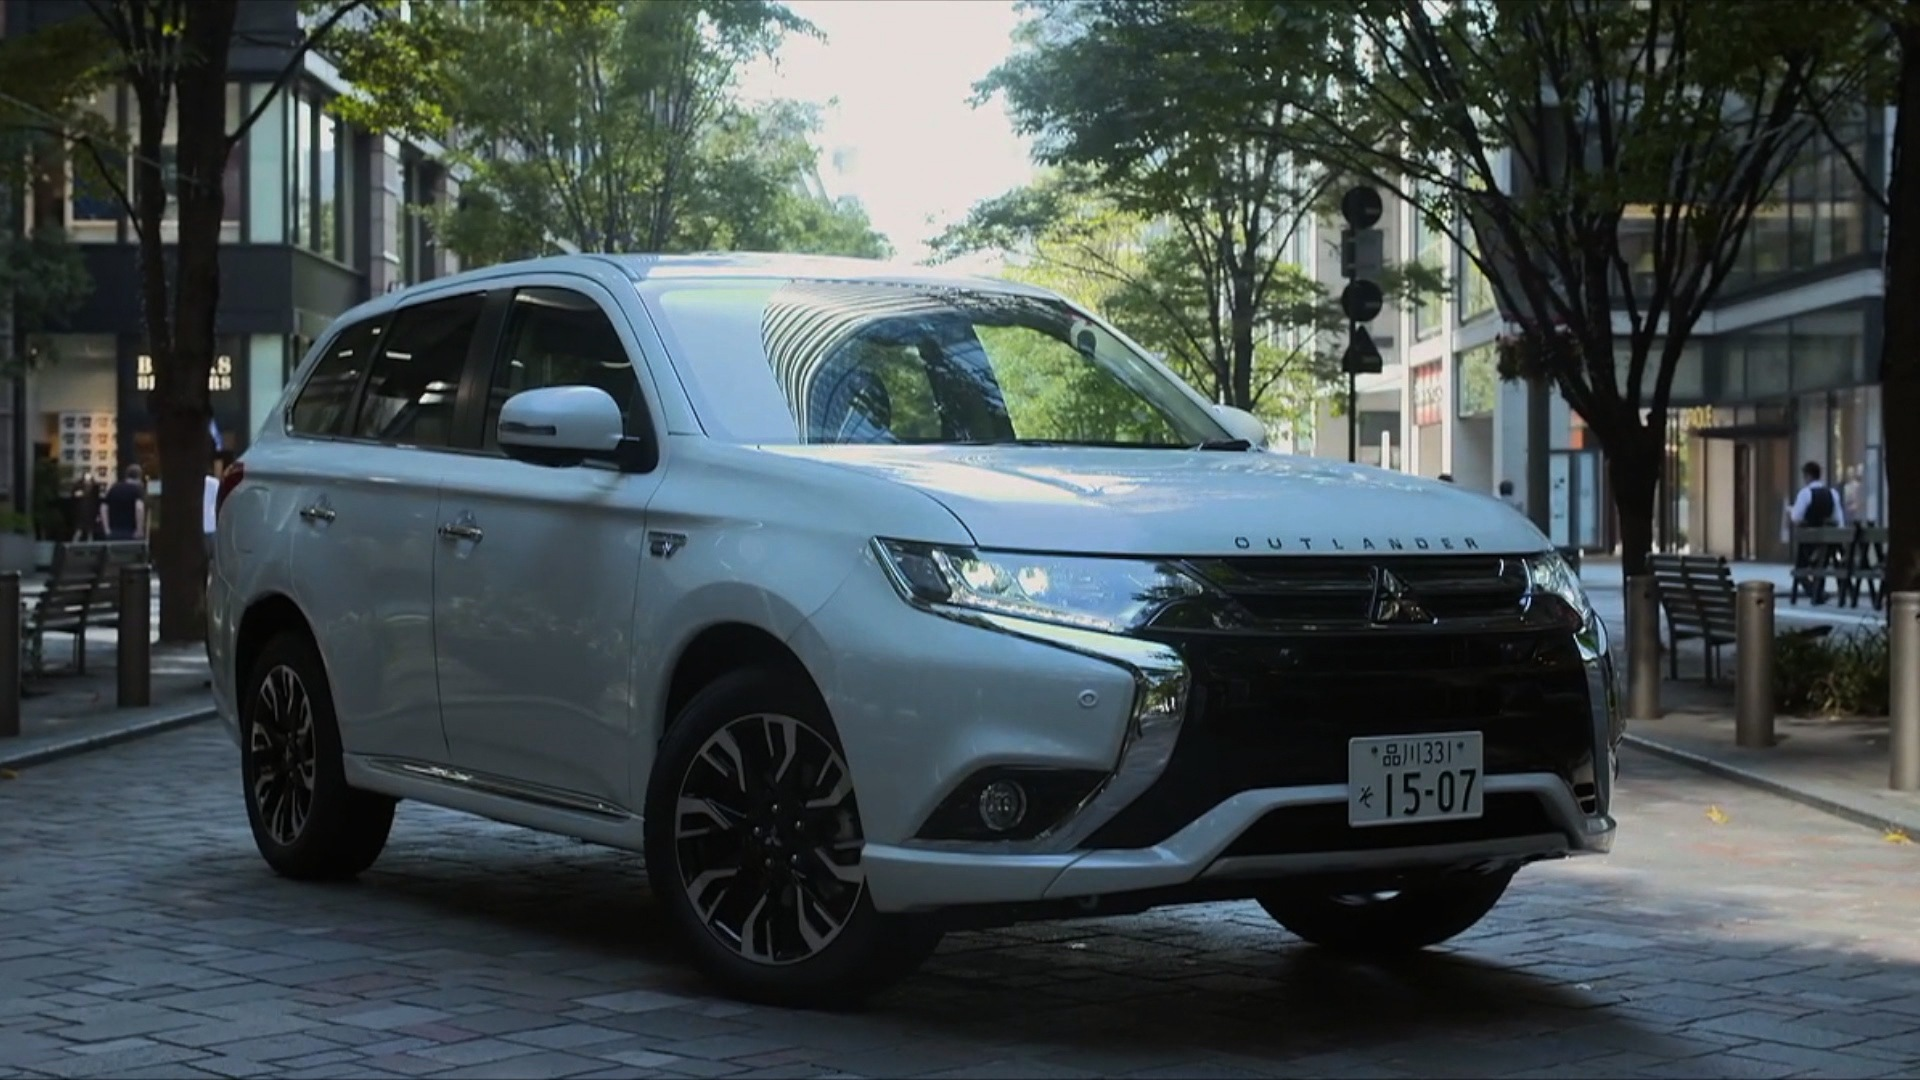 Mitsubishi Outlander PHEV in Japan